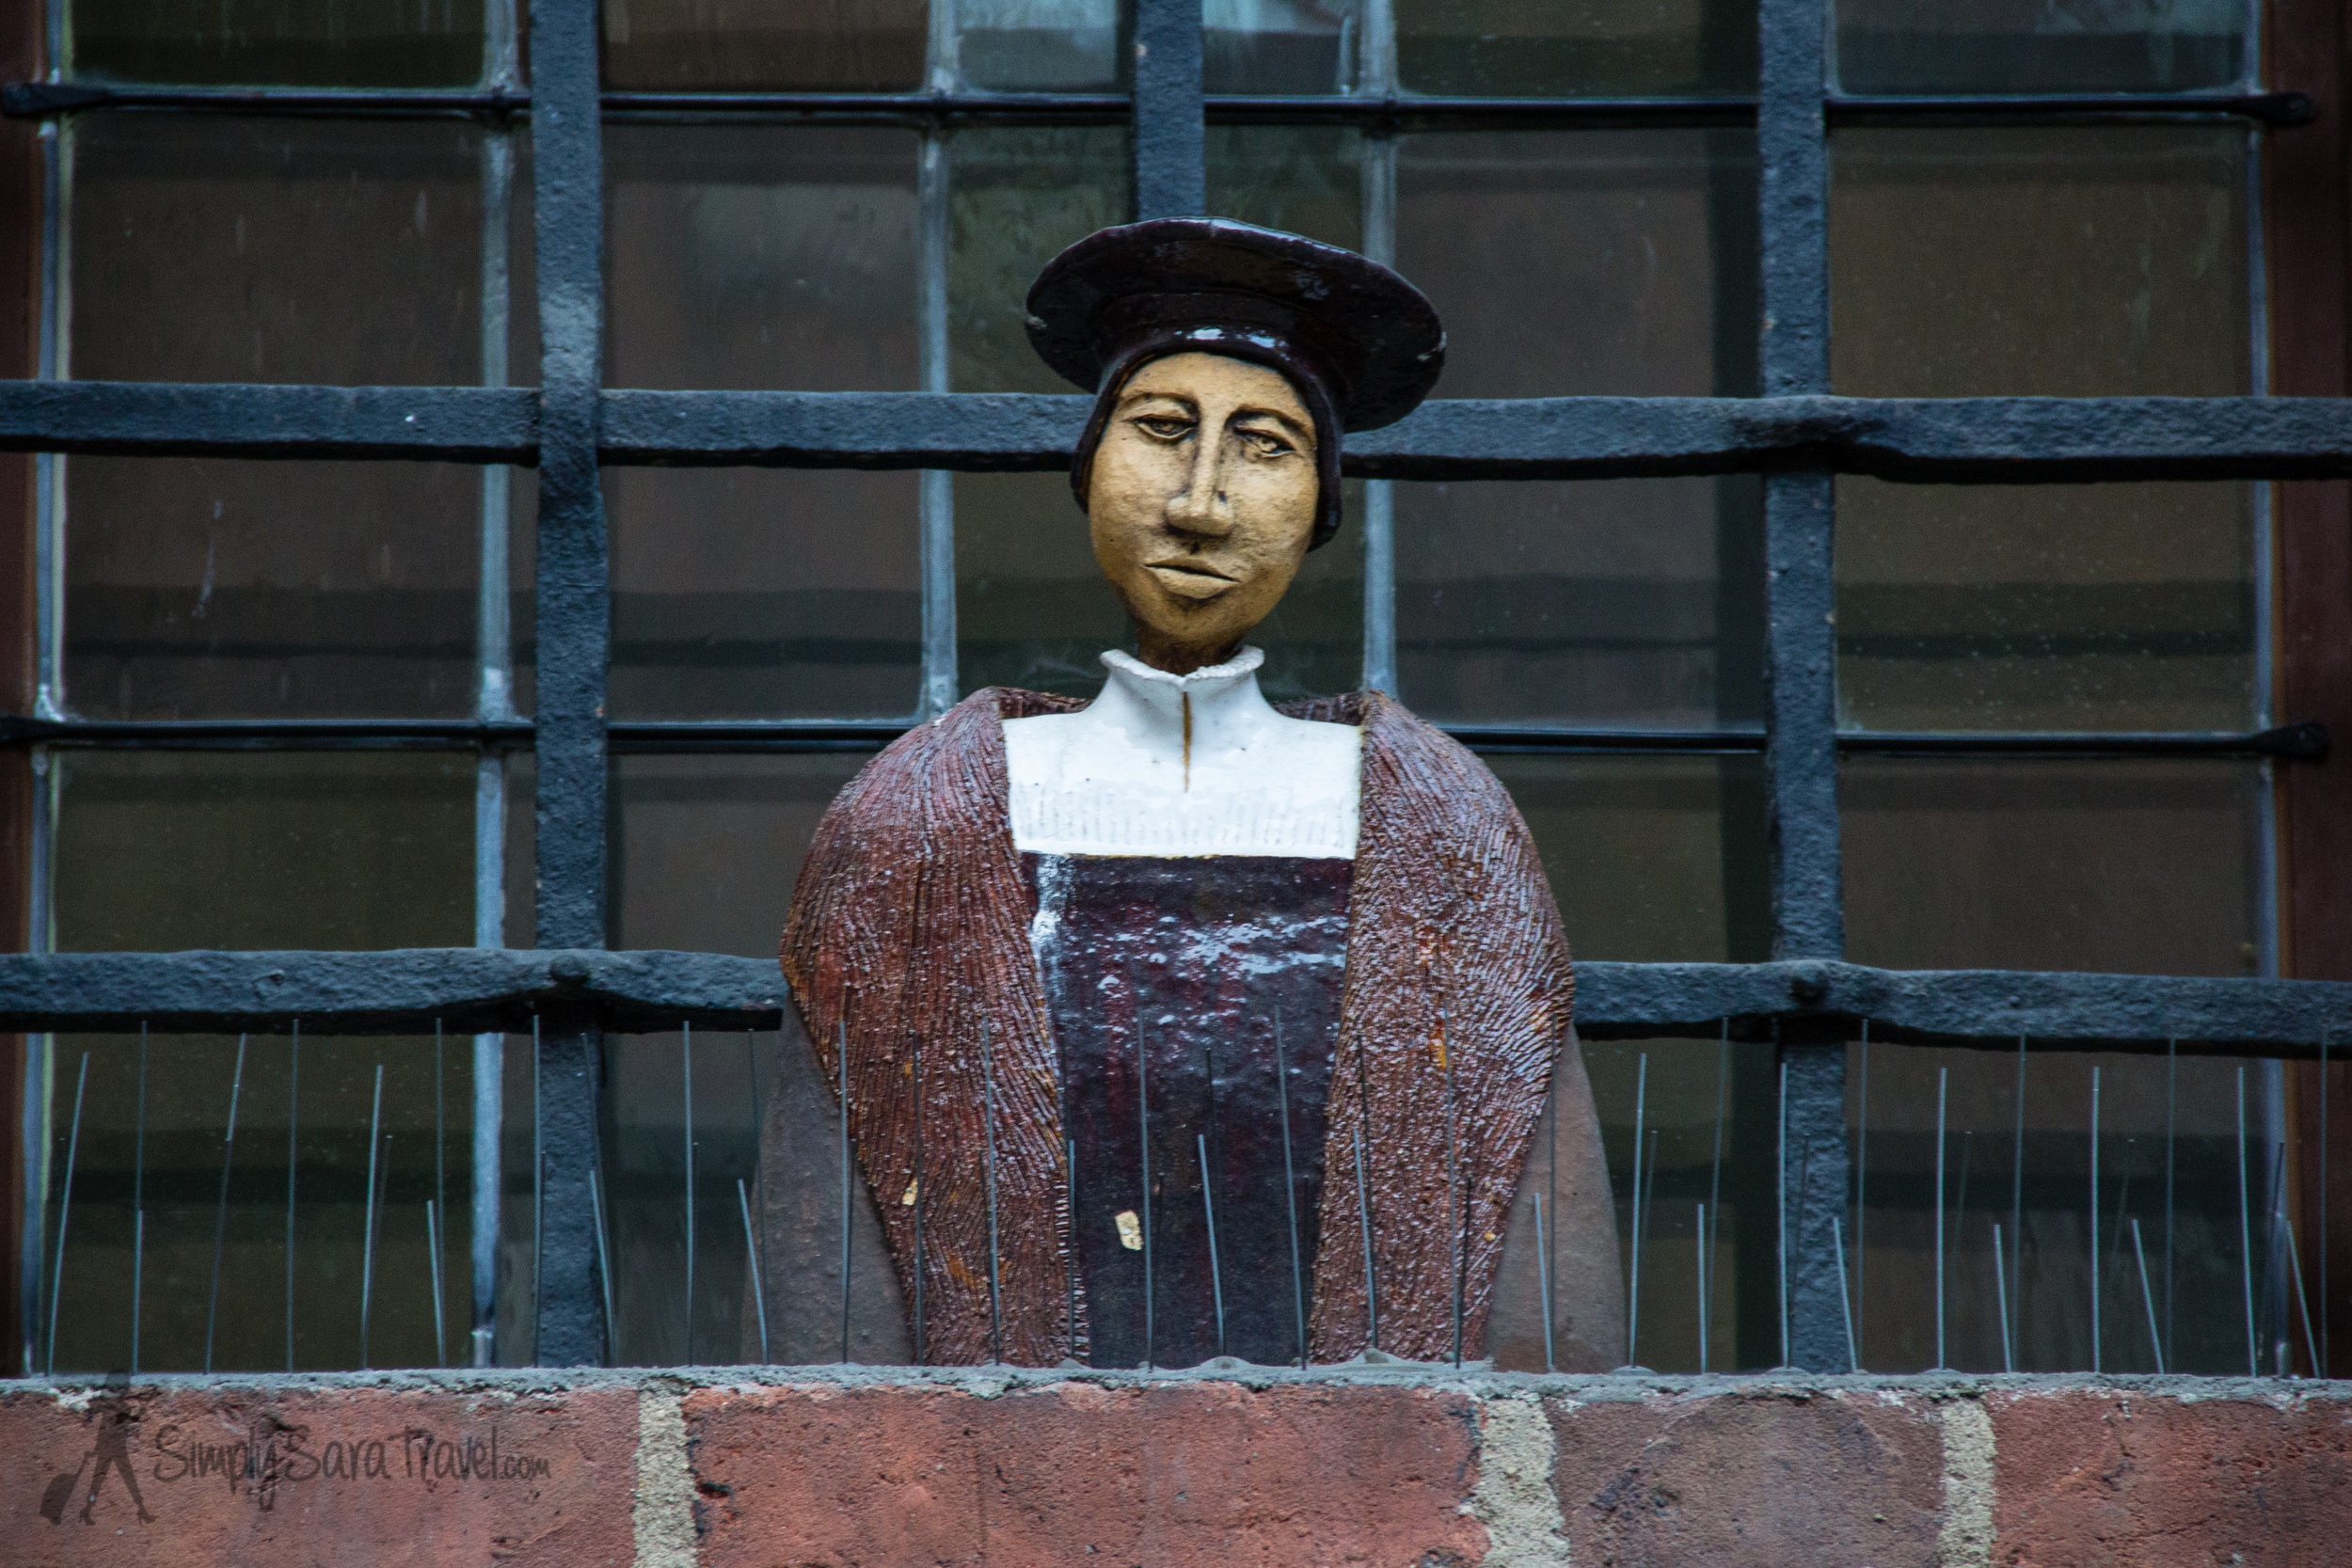 One of the many statues in the courtyard of the building